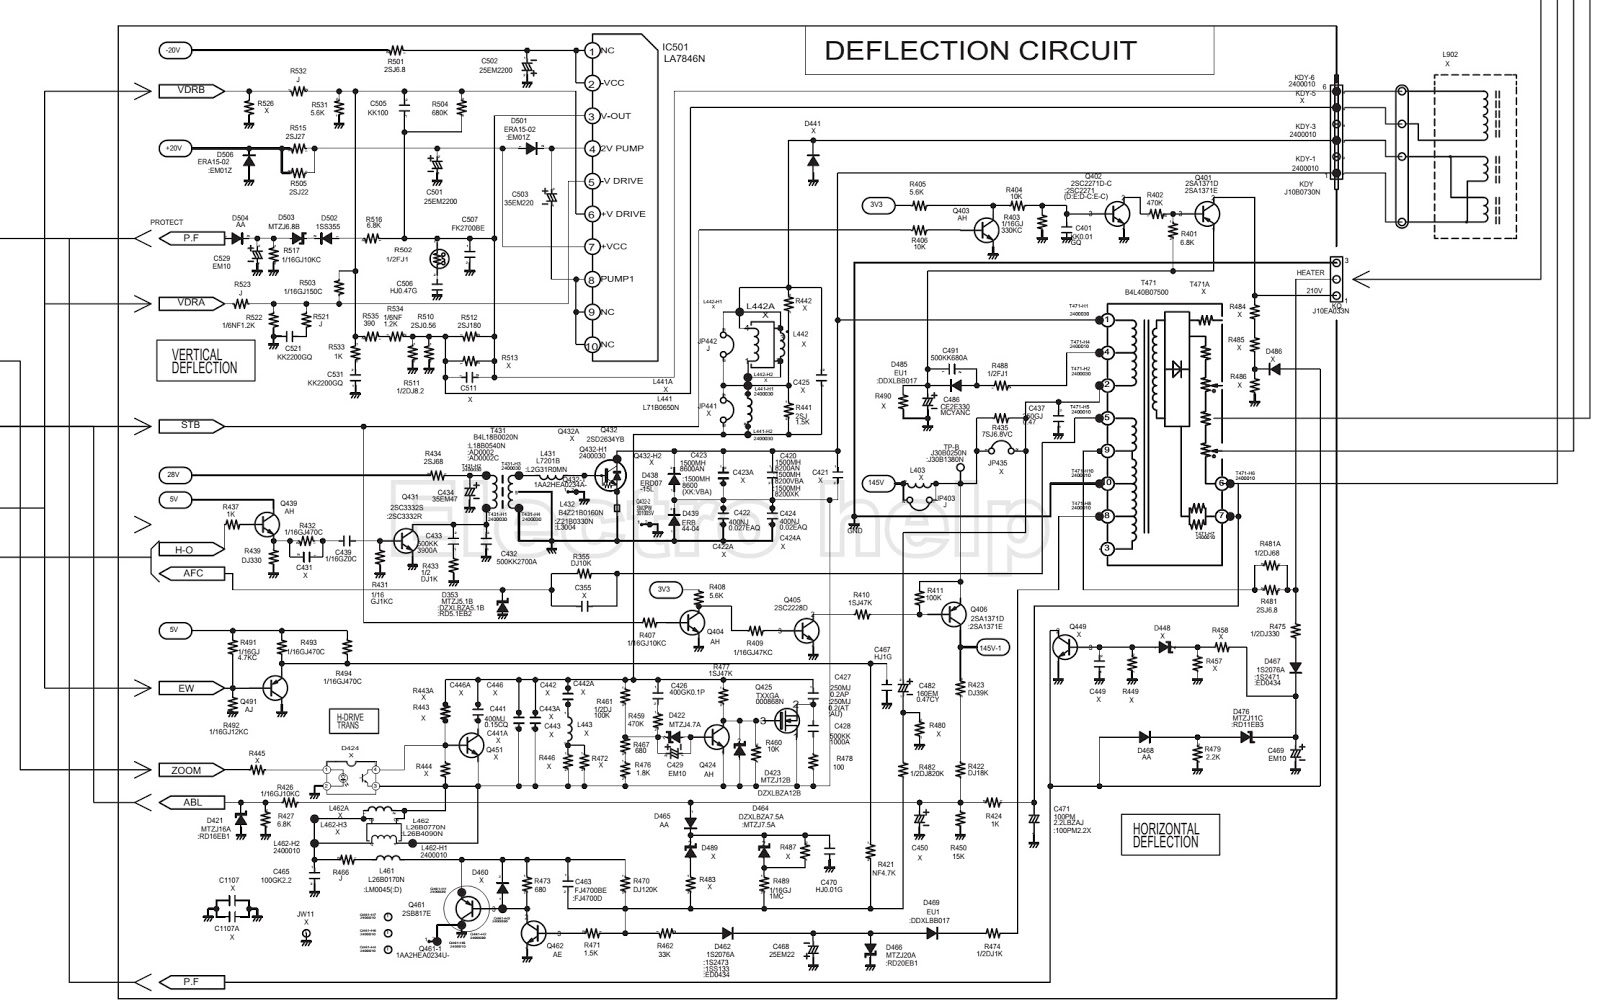 Enjoyable Chevytruck1954Shopmanualwiring Basic Electronics Wiring Diagram Wiring Cloud Oideiuggs Outletorg